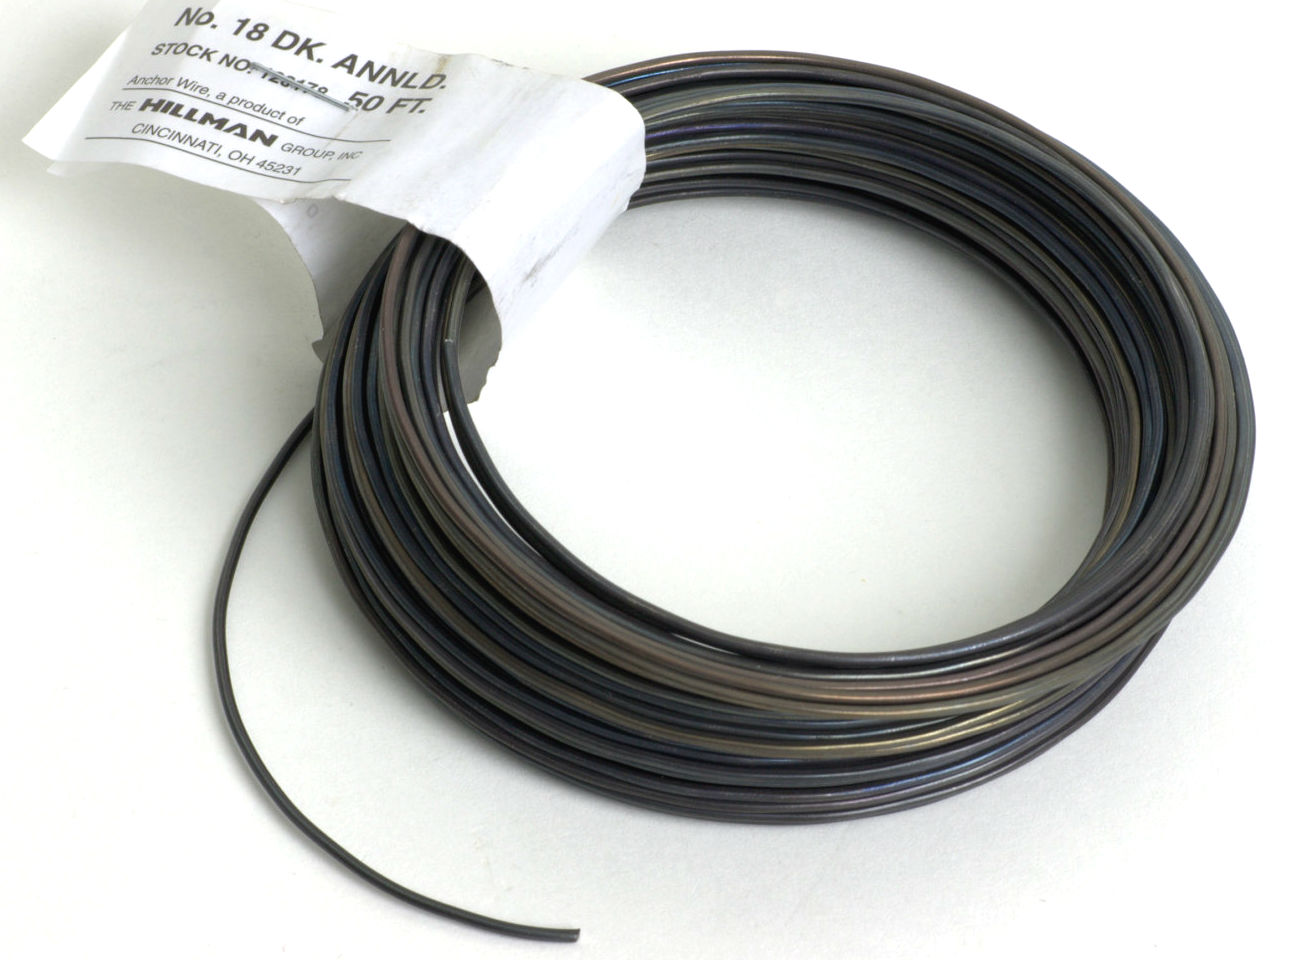 Stove Pipe/Bailing Wire 18G X 50′ | Hollywood Expendables